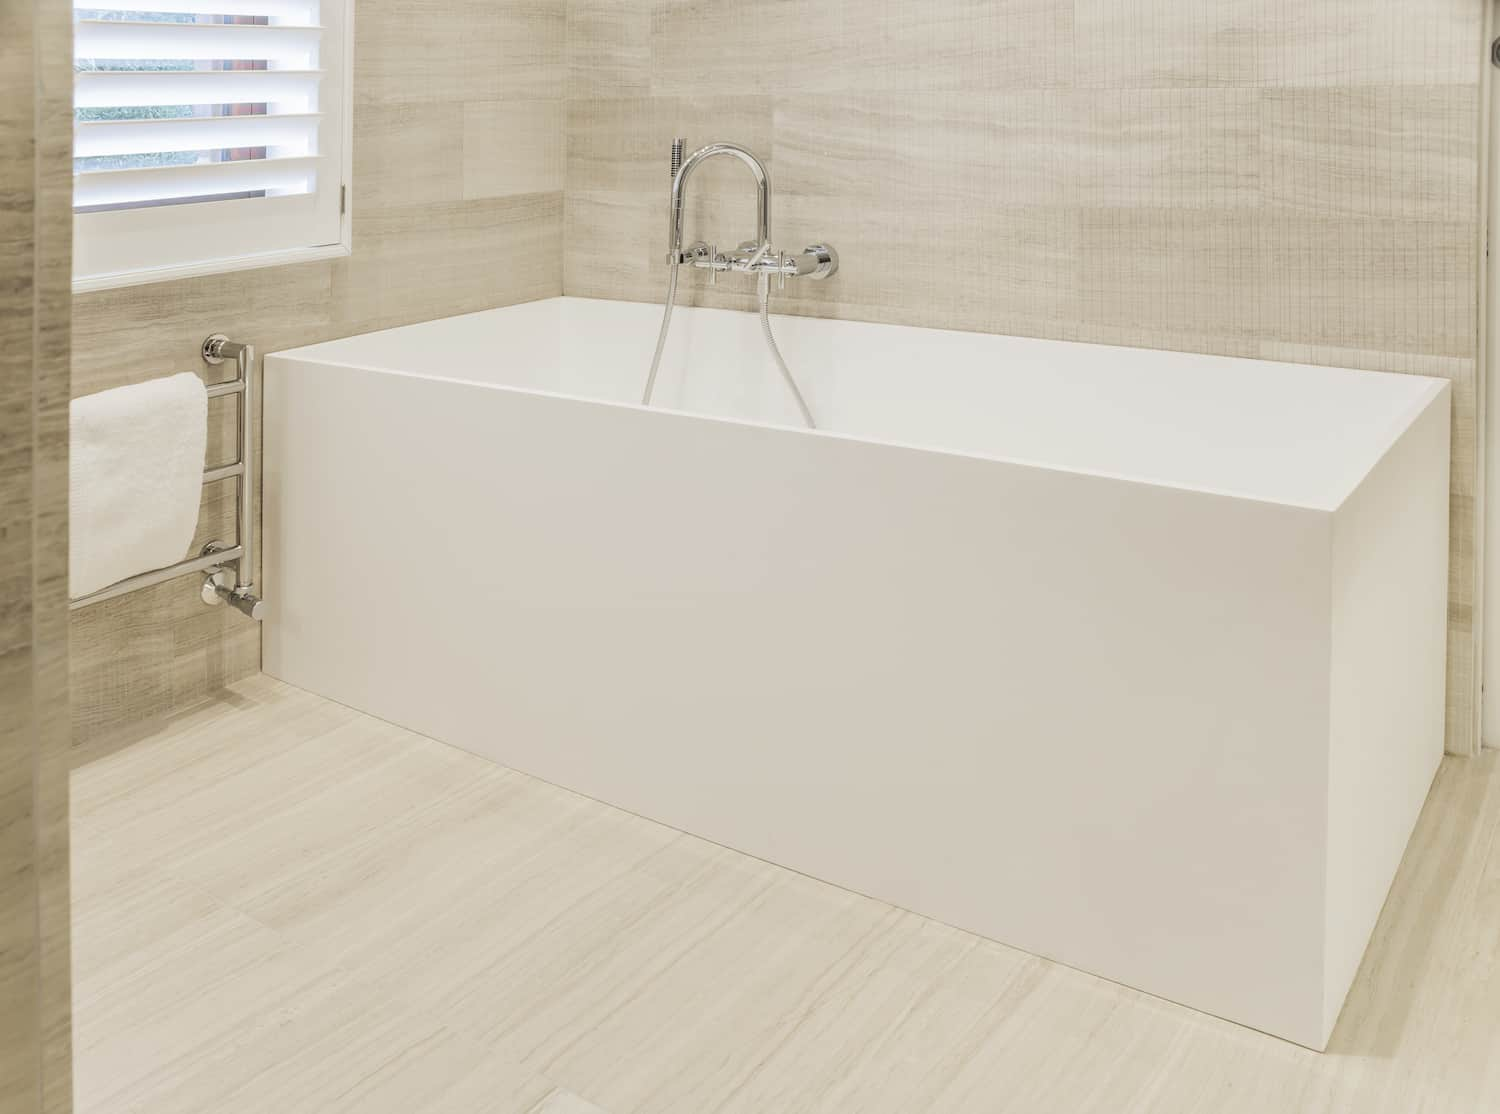 Here's the deep, rectangle white tub in the master bathroom. The tub is very angular which juxtaposes nicely with the rounded vessel basin in the same bathroom.